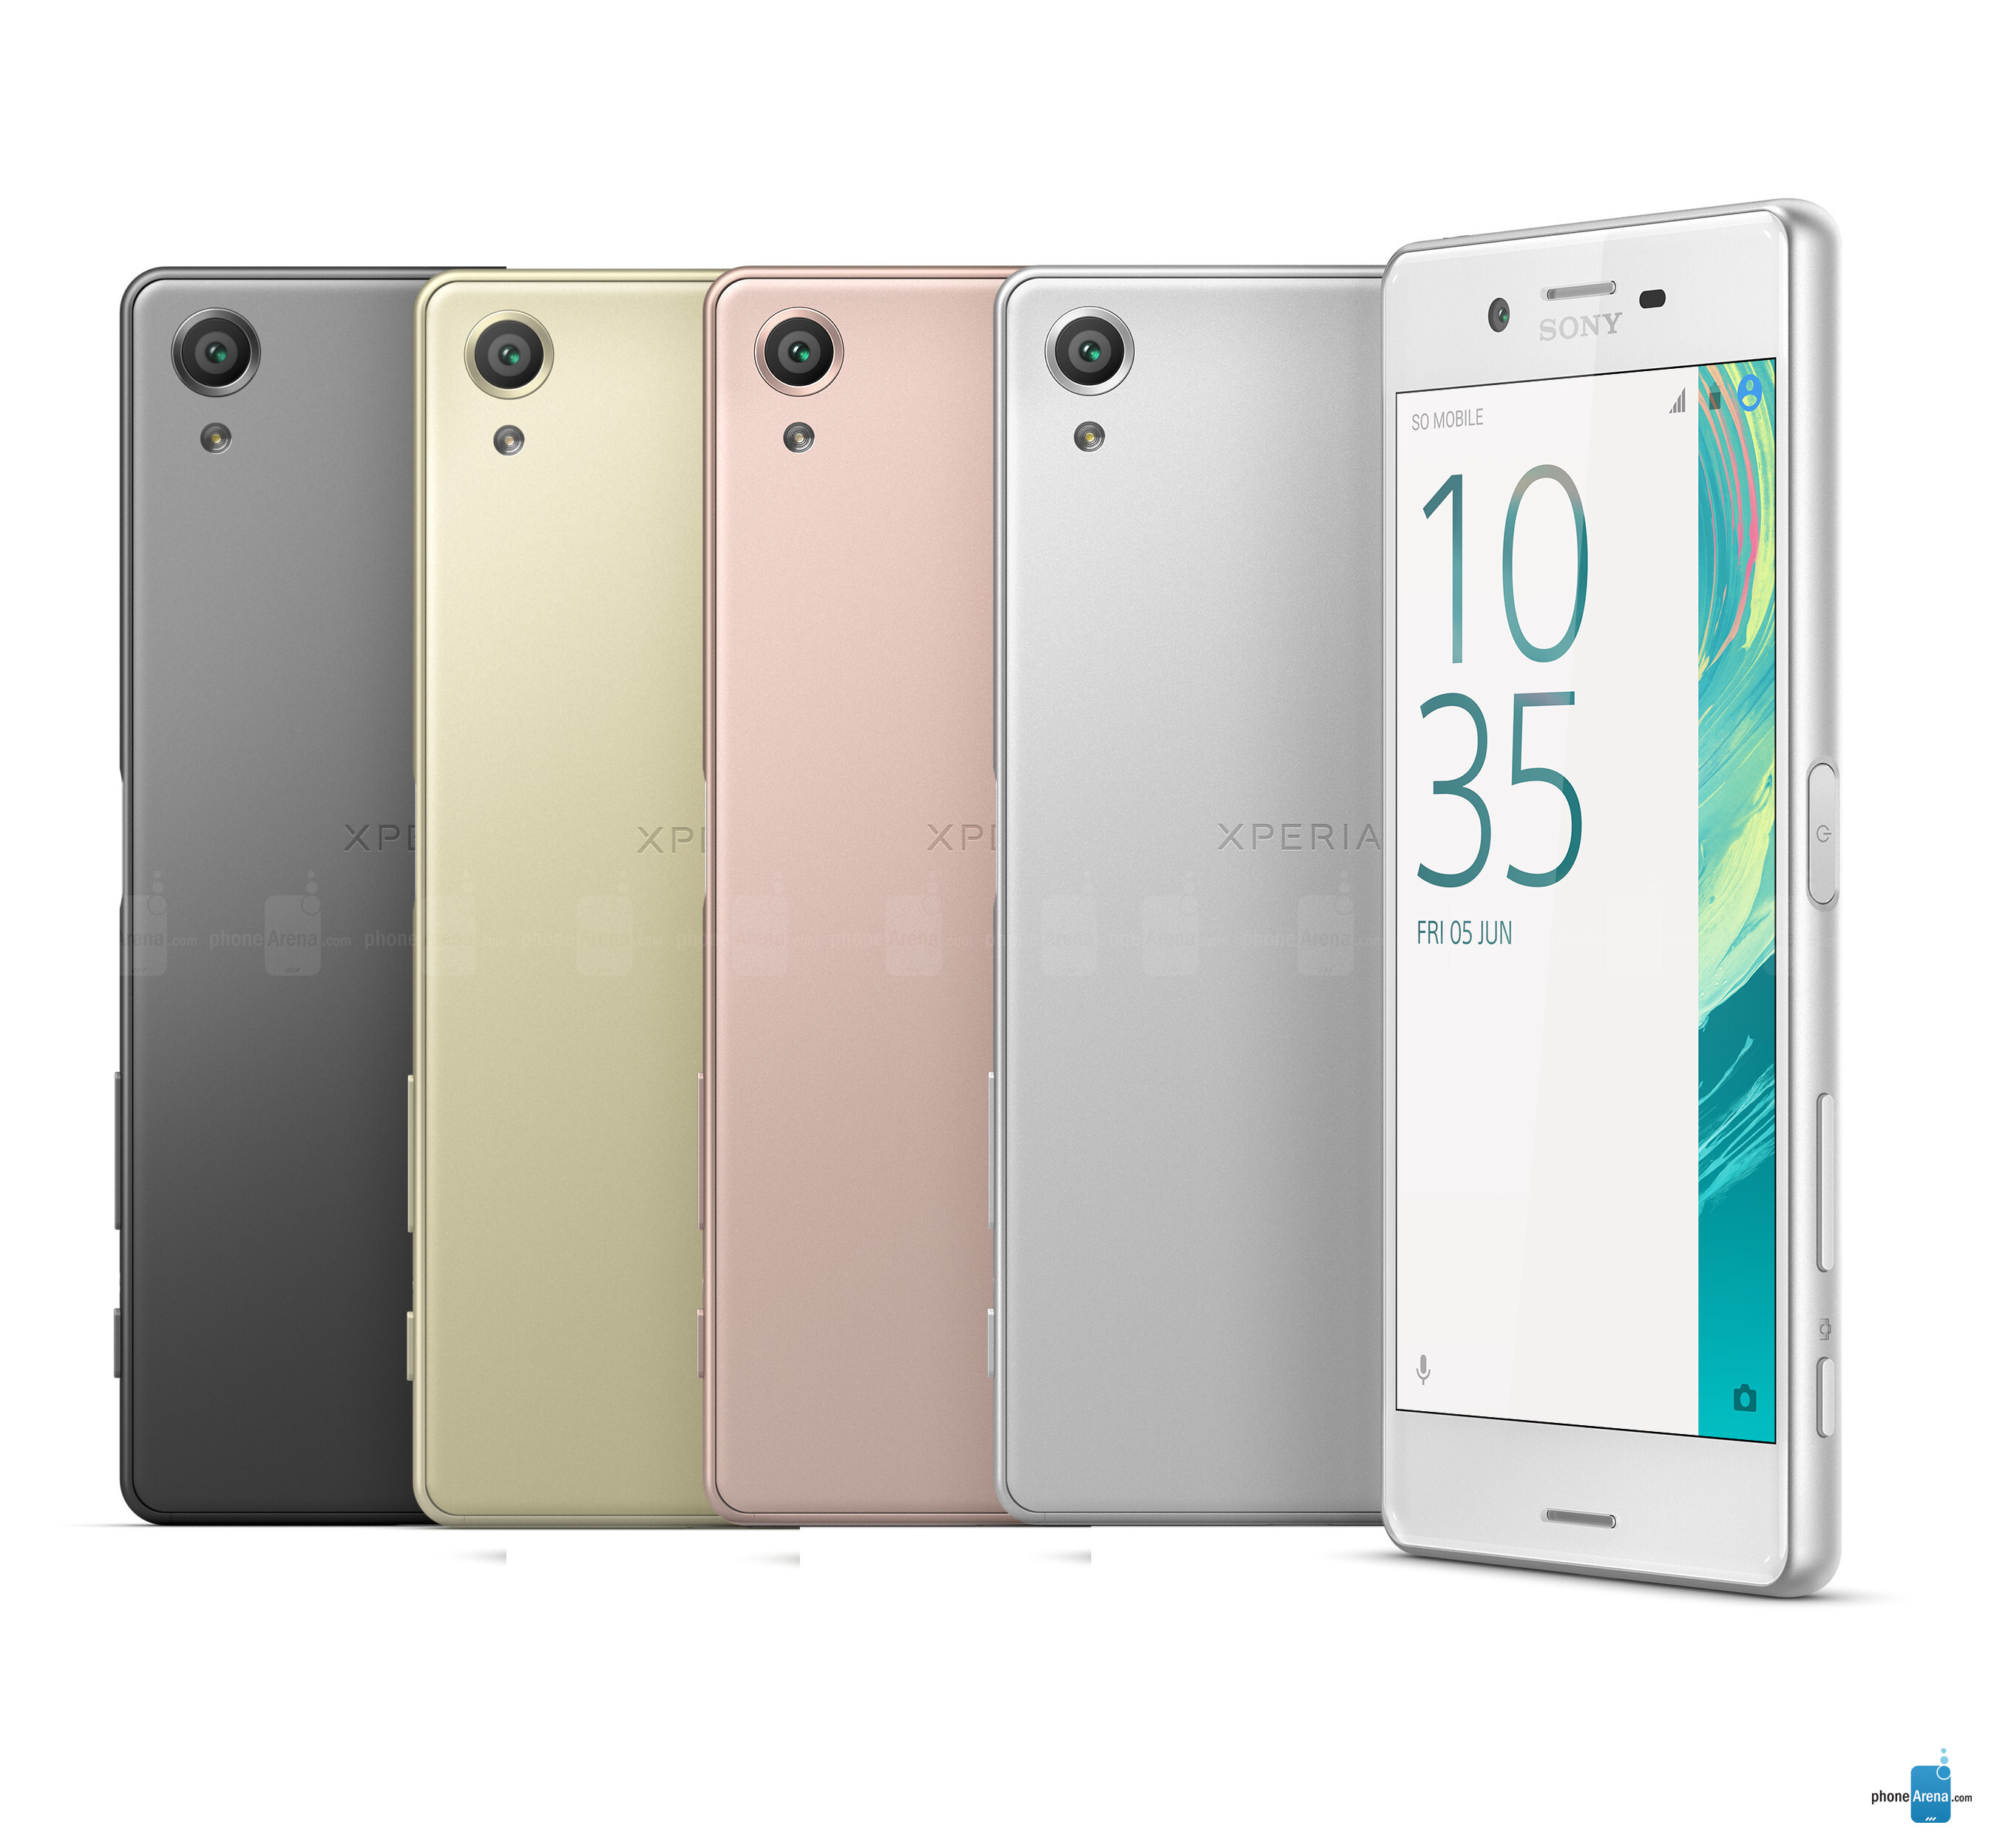 sony xperia x specs. Black Bedroom Furniture Sets. Home Design Ideas